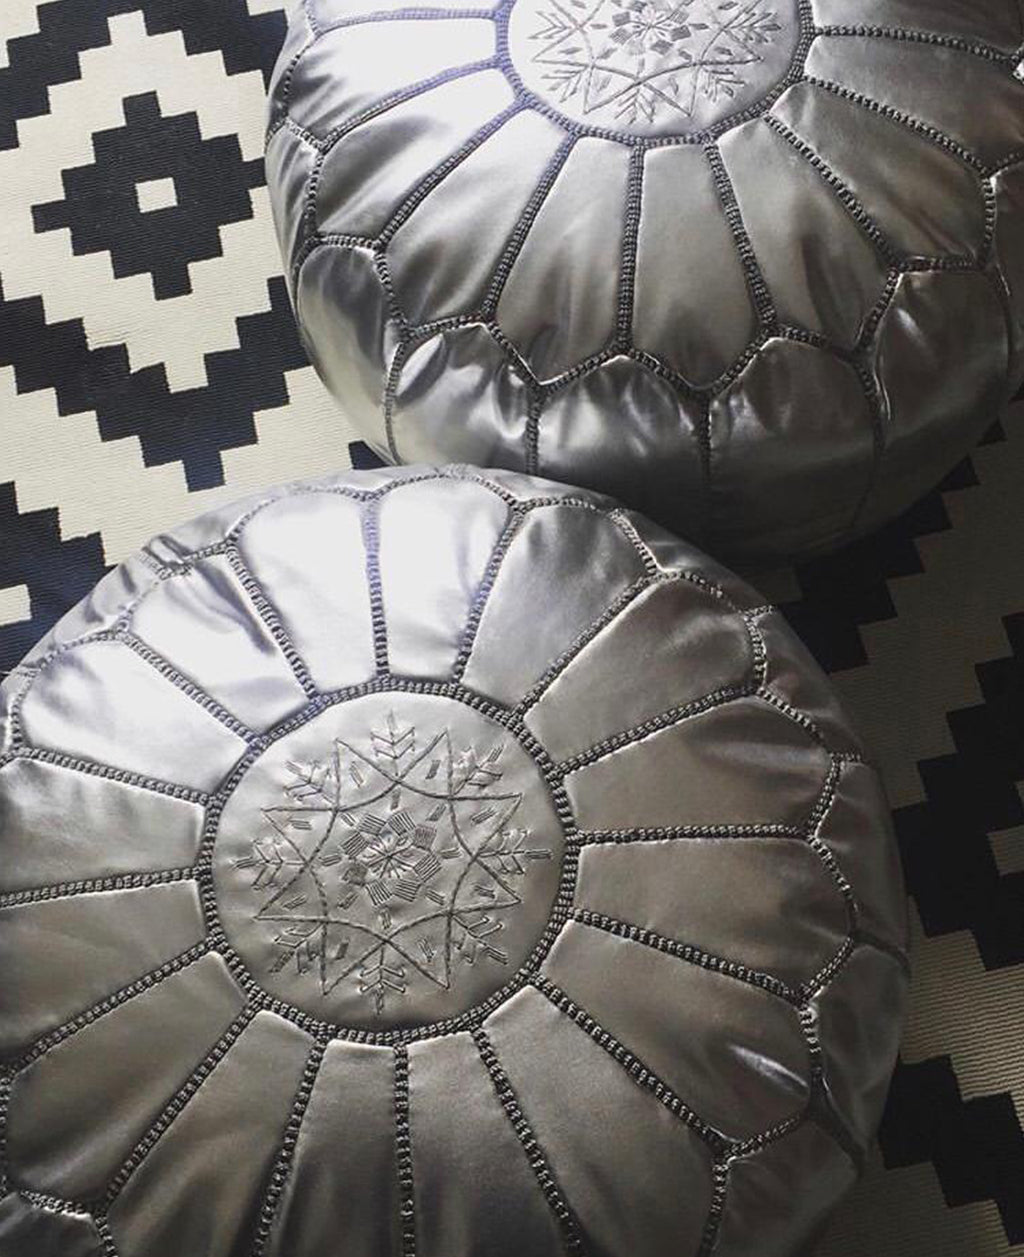 Moroccan Round Leather Pouf Gold and Silver - Moroccan Interior